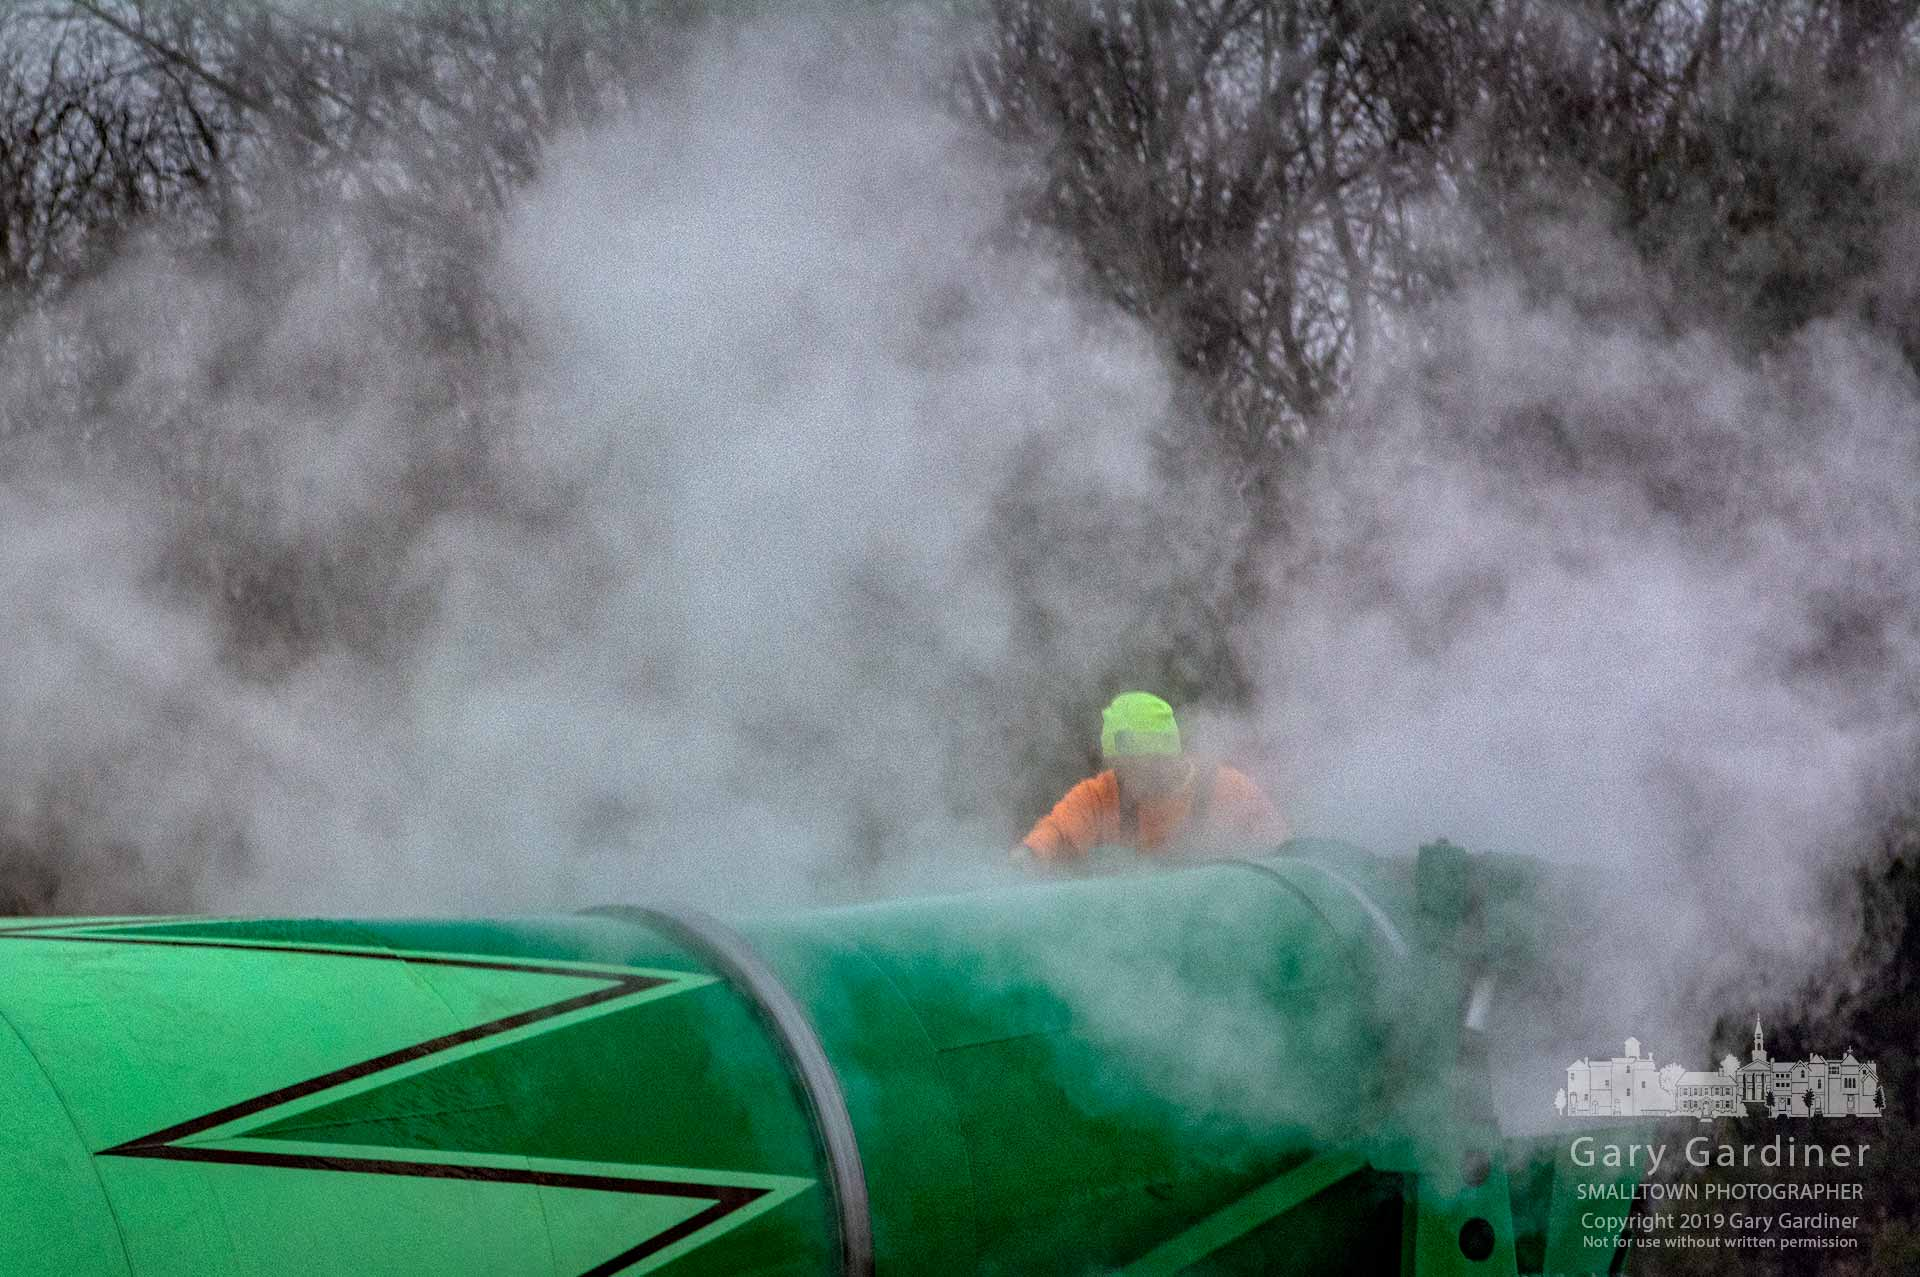 A concrete truck operator works in a cloud of water condensation rising from his truck as he cleans it after delivering a morning load to the DHL construction site. My Final Photo for Jan. 11, 2019.